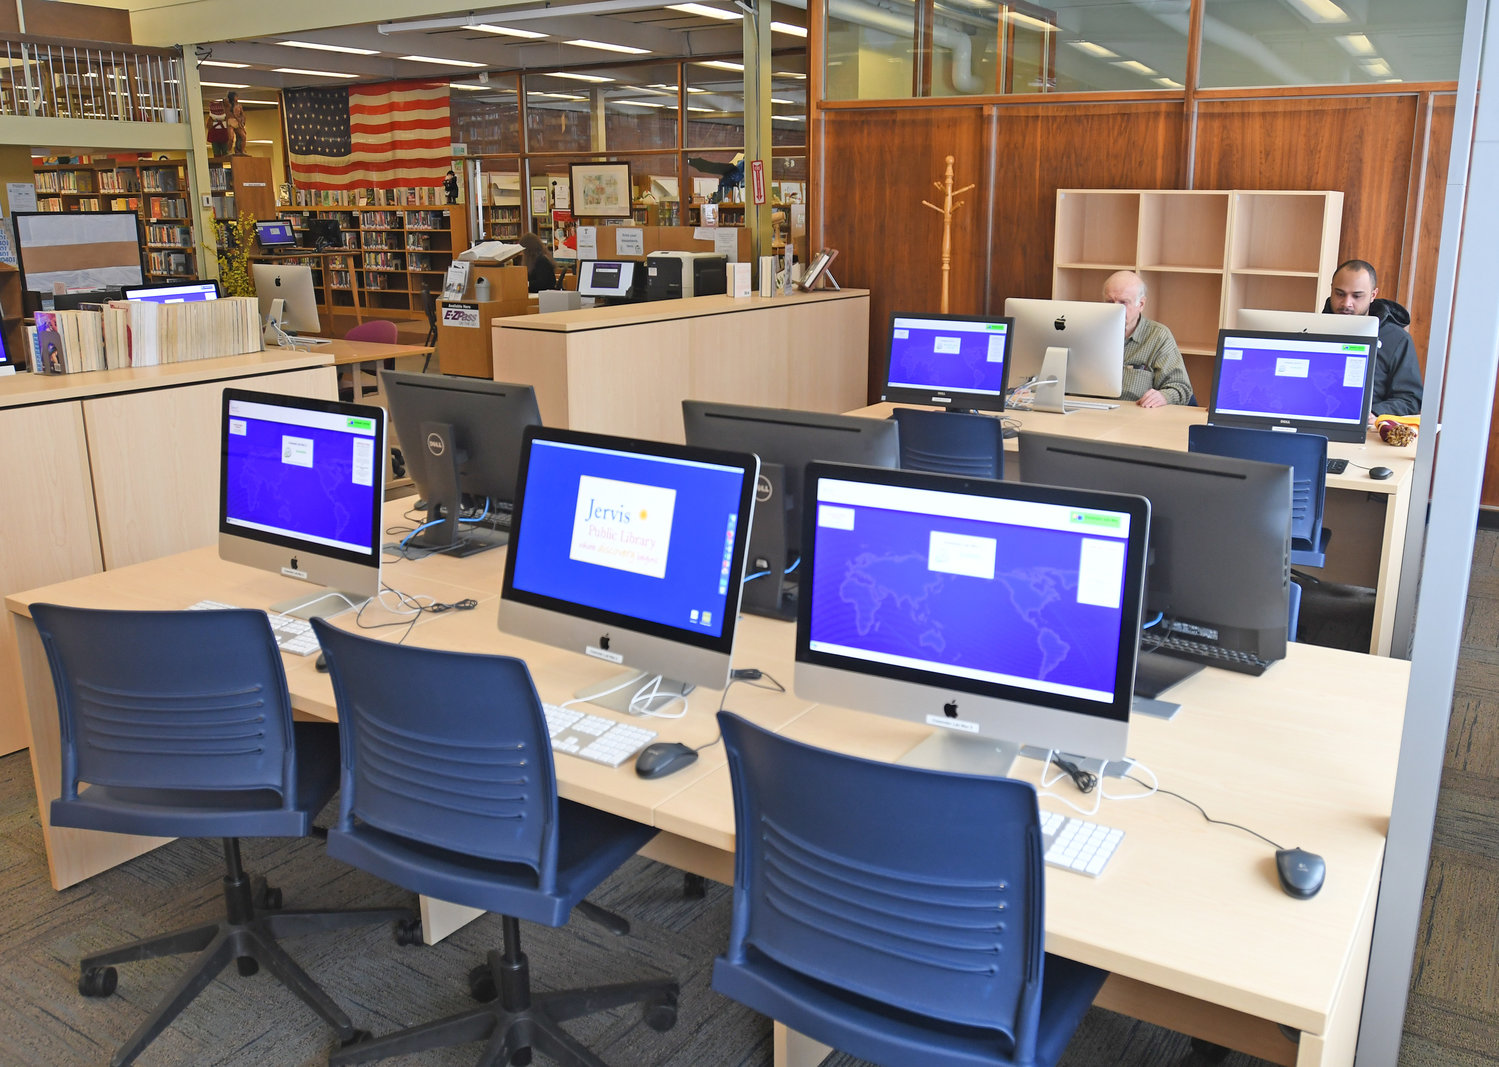 ALL NEW — Jervis Public Library, 613 N. Washington St., expanded its computer lab in 2018 to include five Mac computers and five Windows PCs. The library also added new computers to the internet cluster, the children's room, and the express station last year.